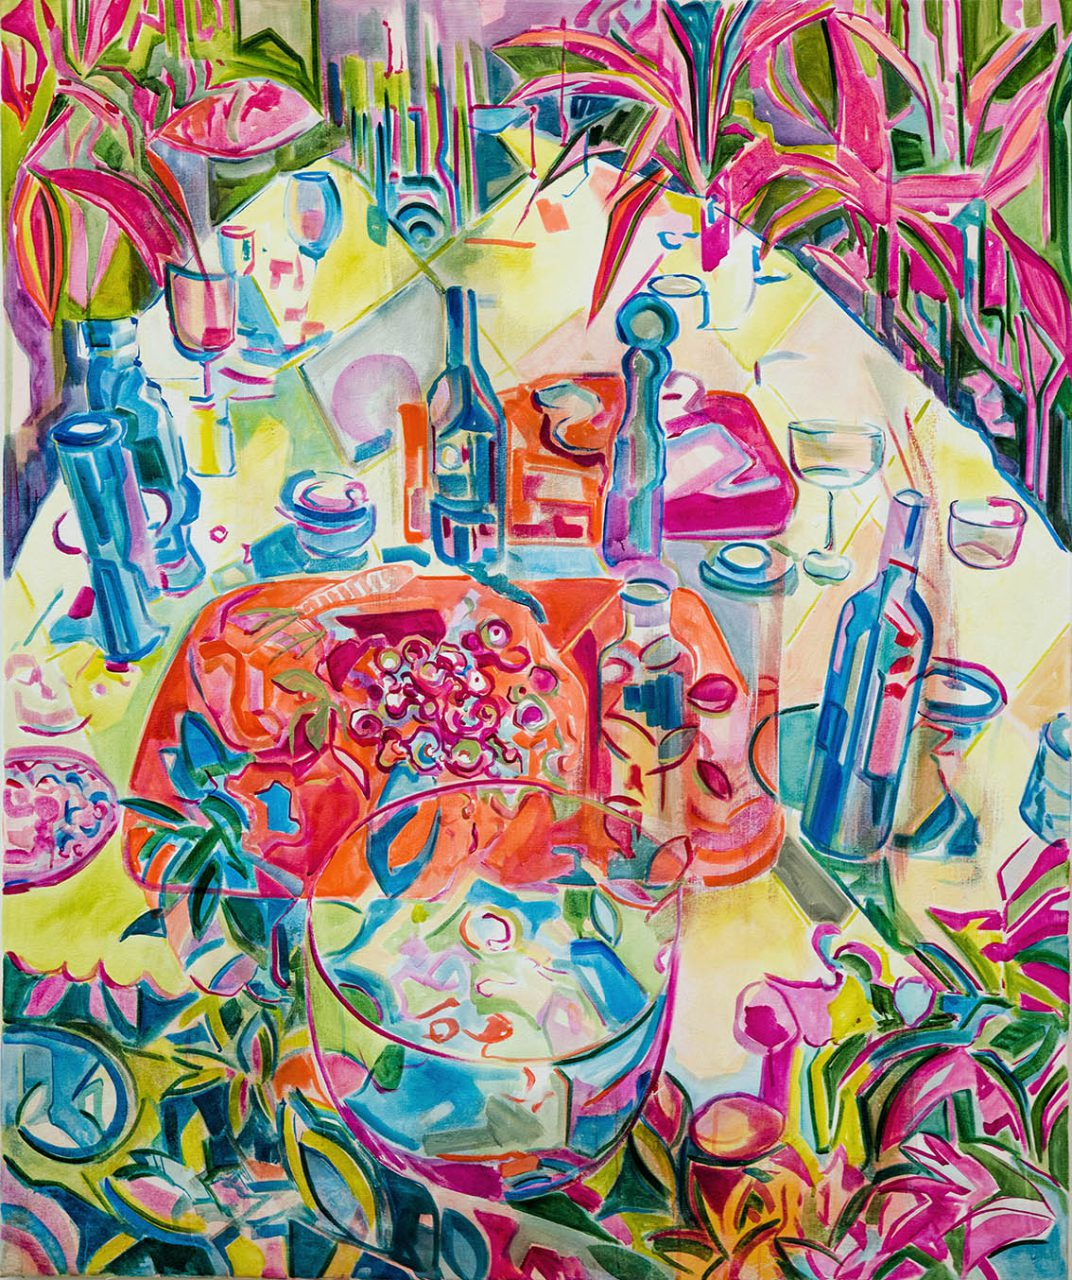 Luncheon, acrylic on canvas, 120x100cm, 2019